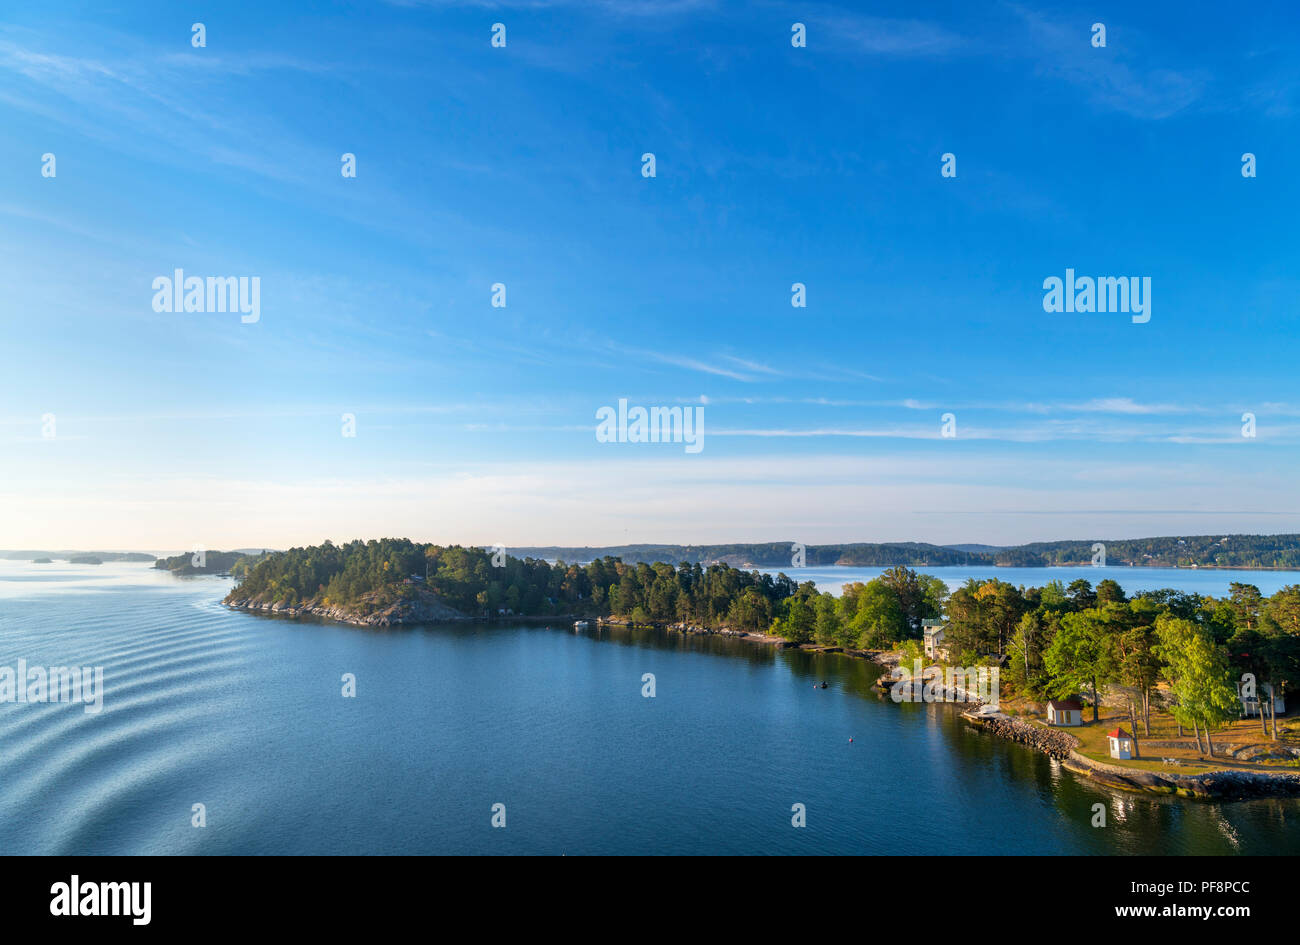 Stockholm Archipelago. View from the deck of the Turku to Stockholm ferry in the early morning, Stockholm Archipelago, Sweden - Stock Image